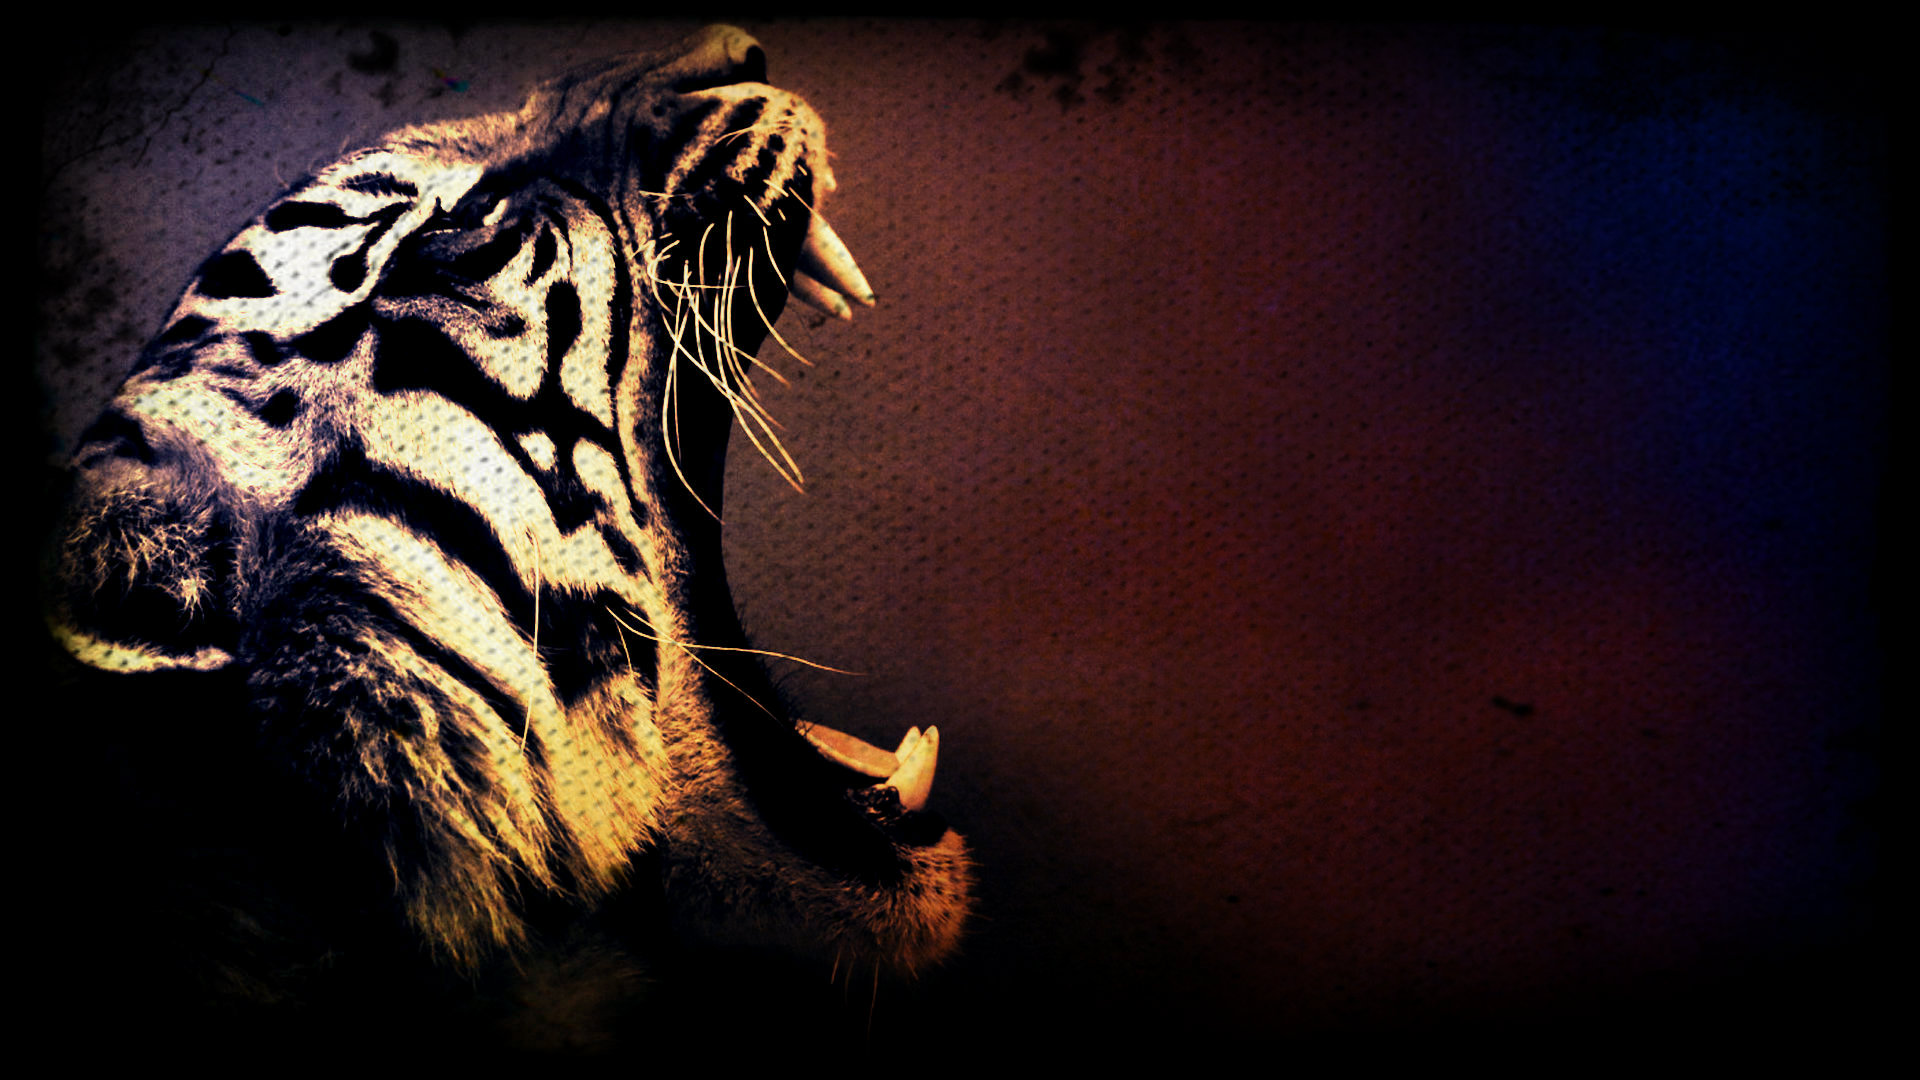 Tiger Art Wallpaper 1920x1080 29329 Wallpaperup